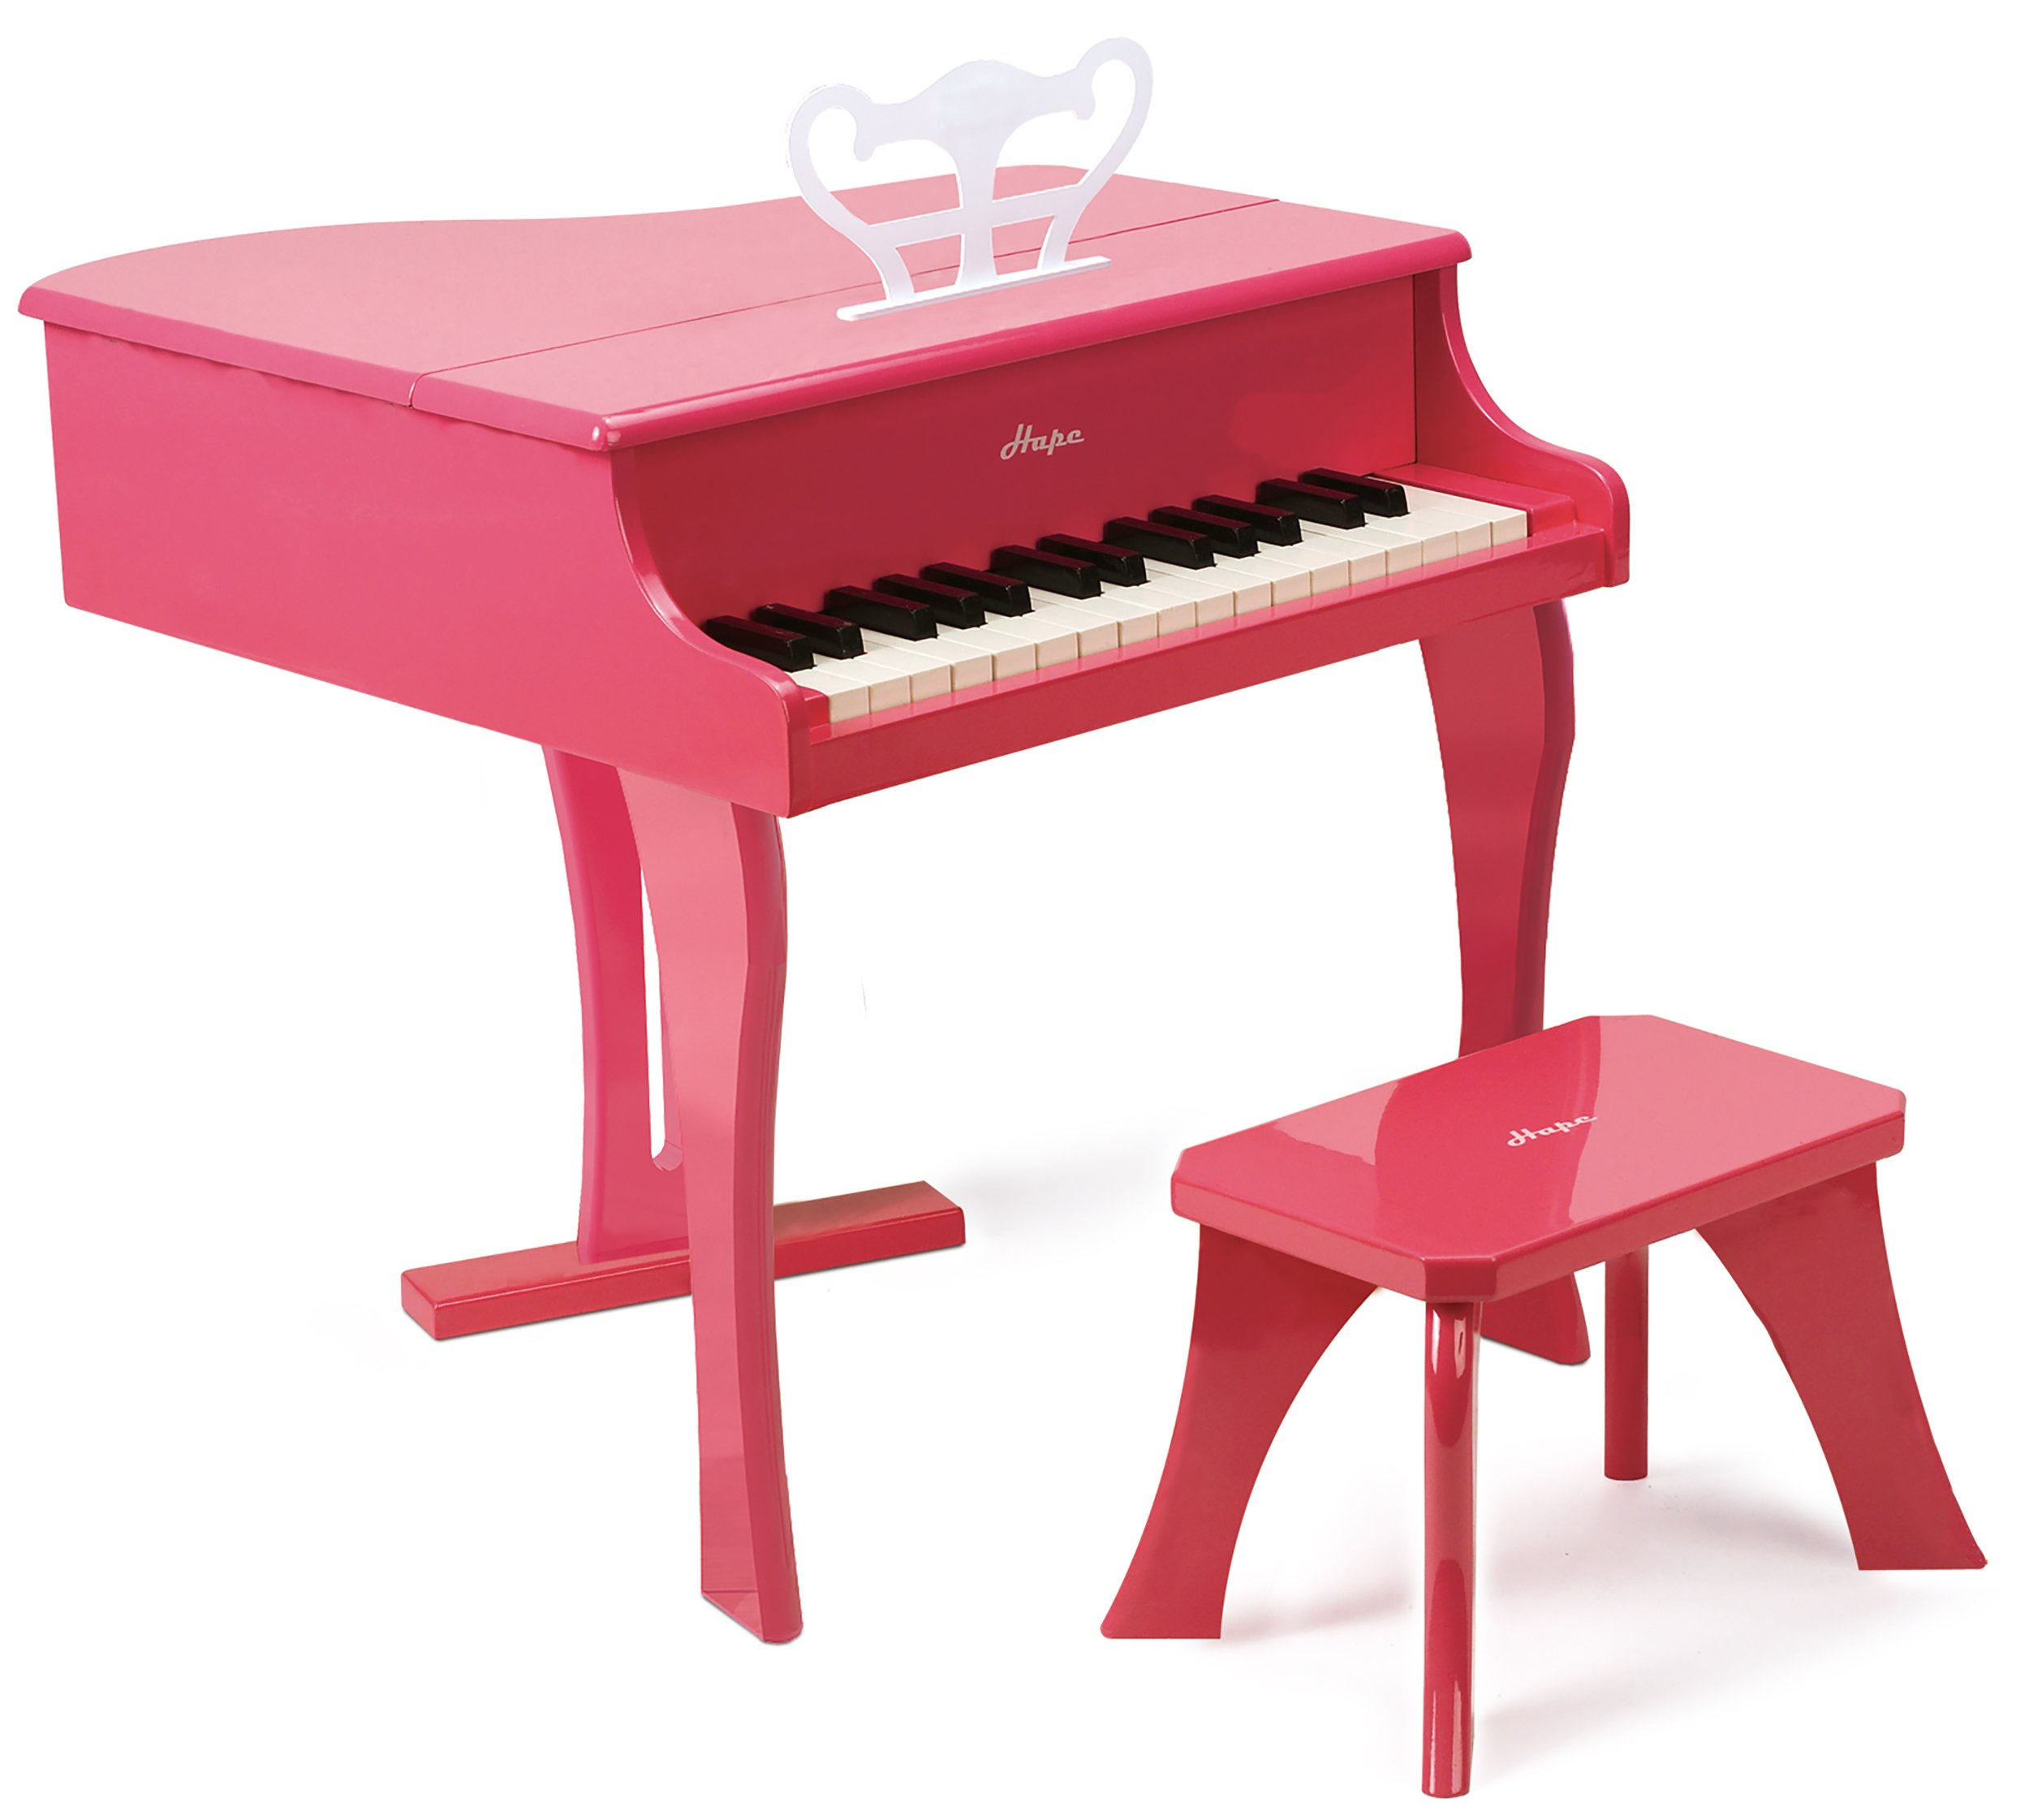 Hape Happy Grand Piano in Pink Toddler Wooden Musical Instrument by Hape